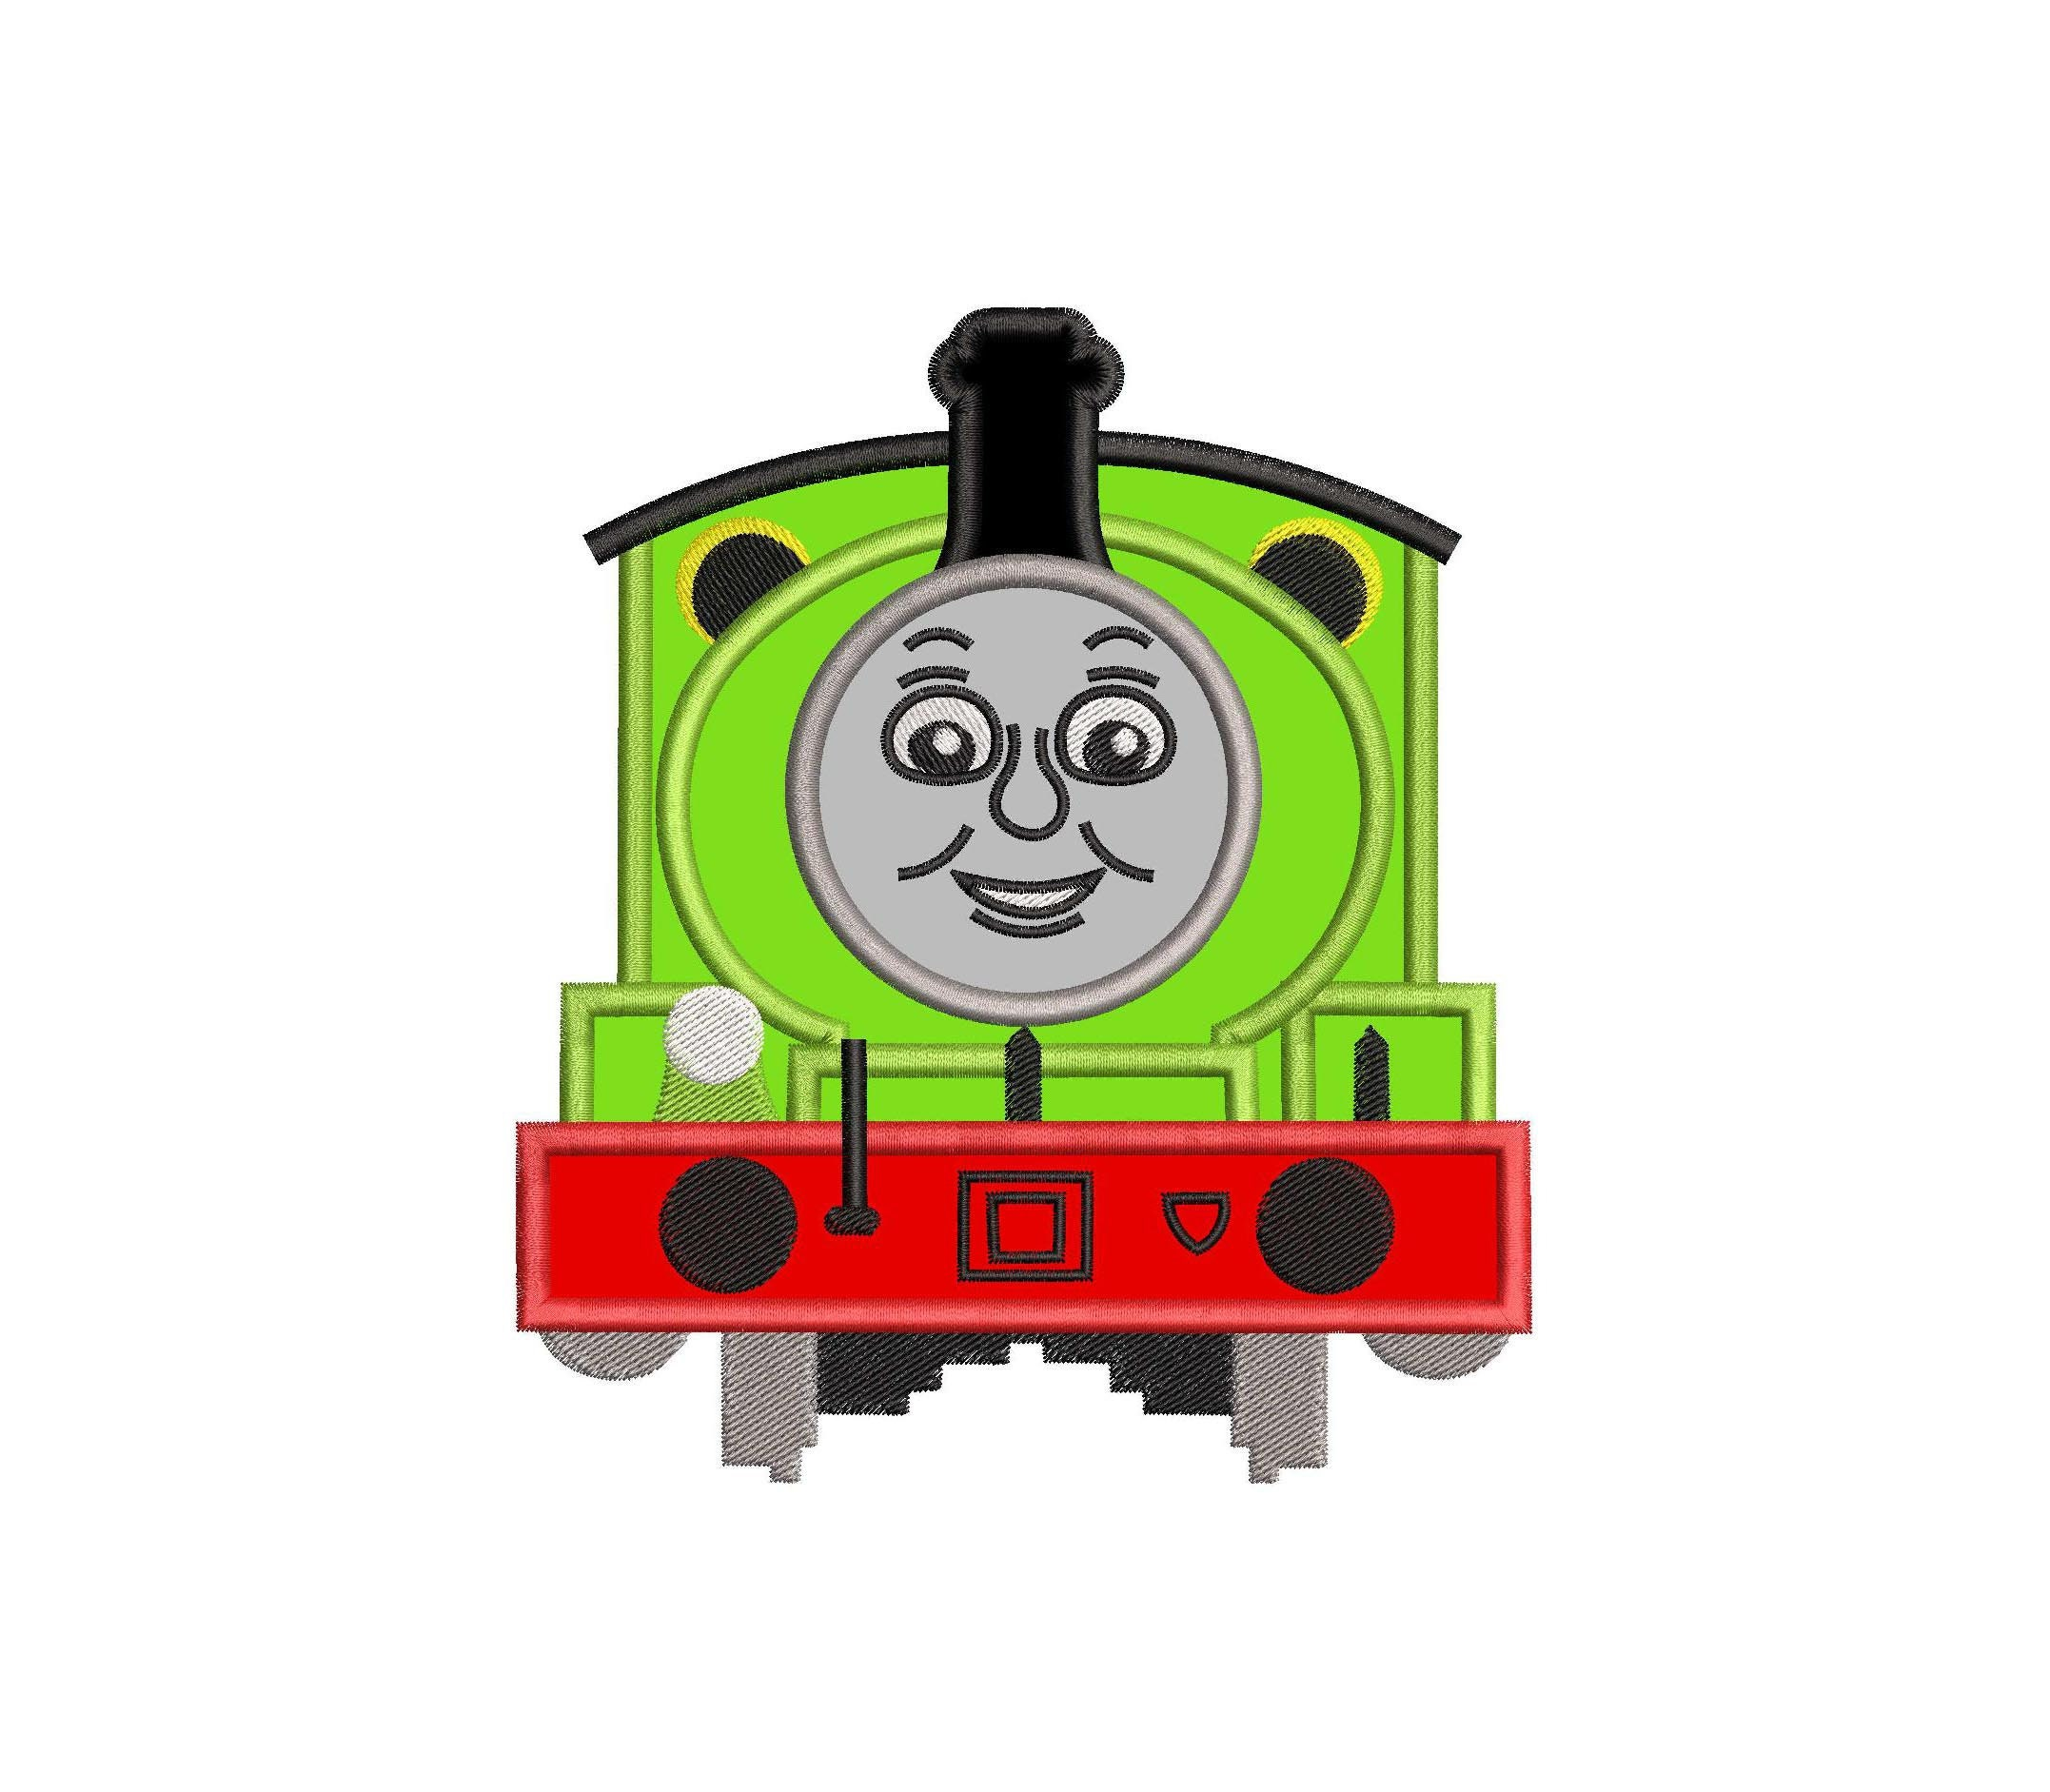 Thomas The Train Machine Embroidery Designs Wwwtopsimagescom